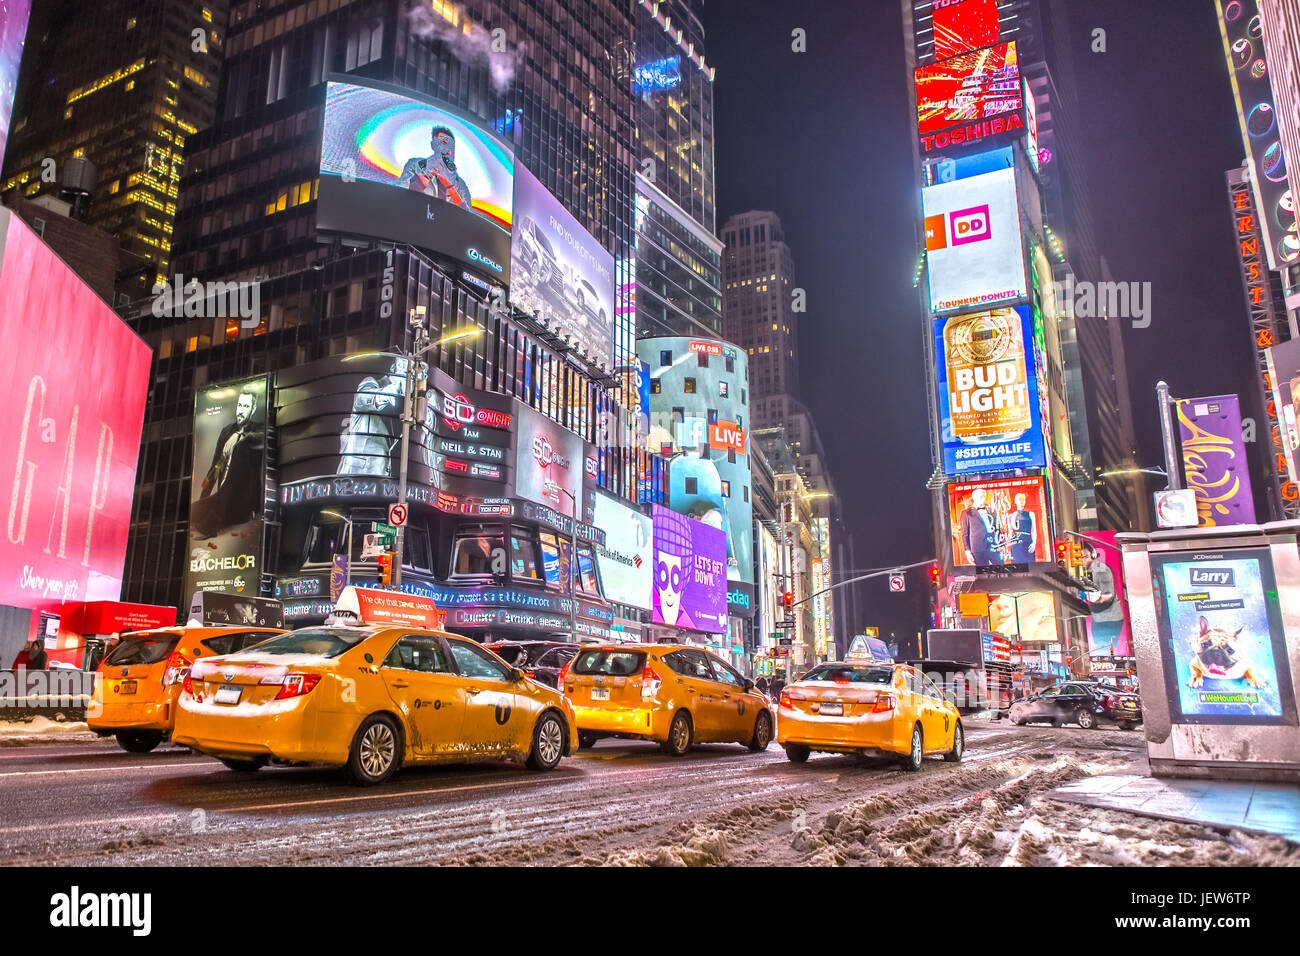 Yellow Cabs am Times Square in New York Stockbild